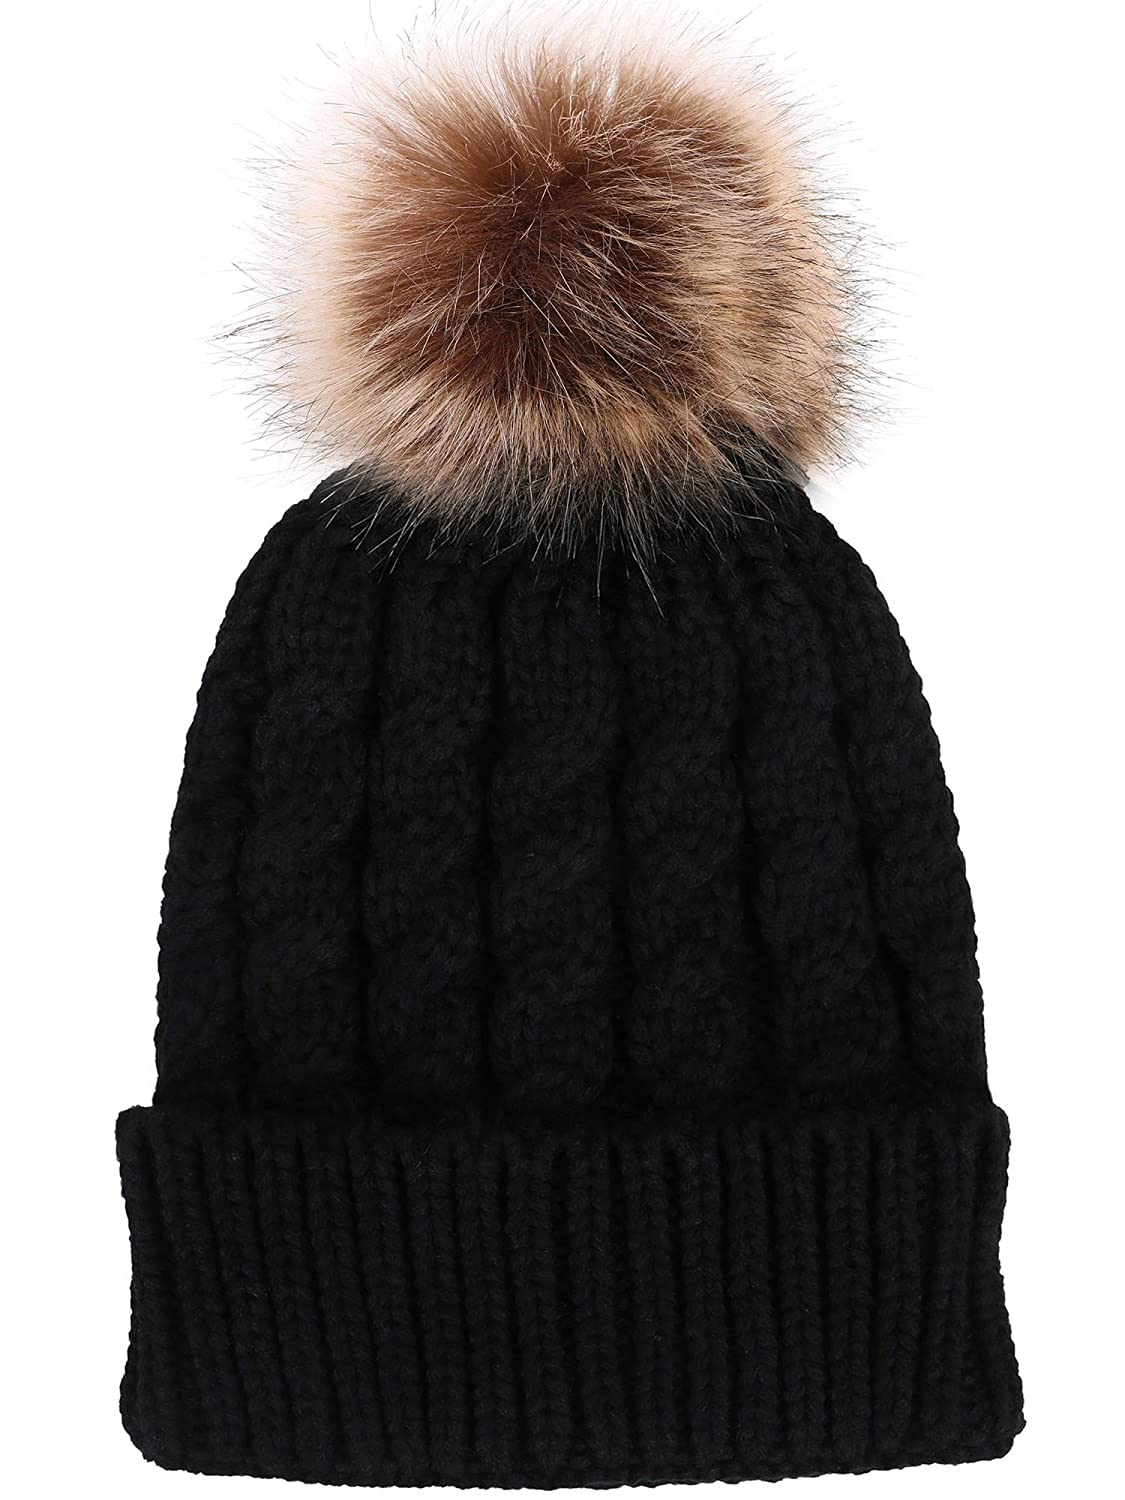 Women s Winter Soft Knitted Beanie Hat with Faux Fur Pom Pom 3085adb3d